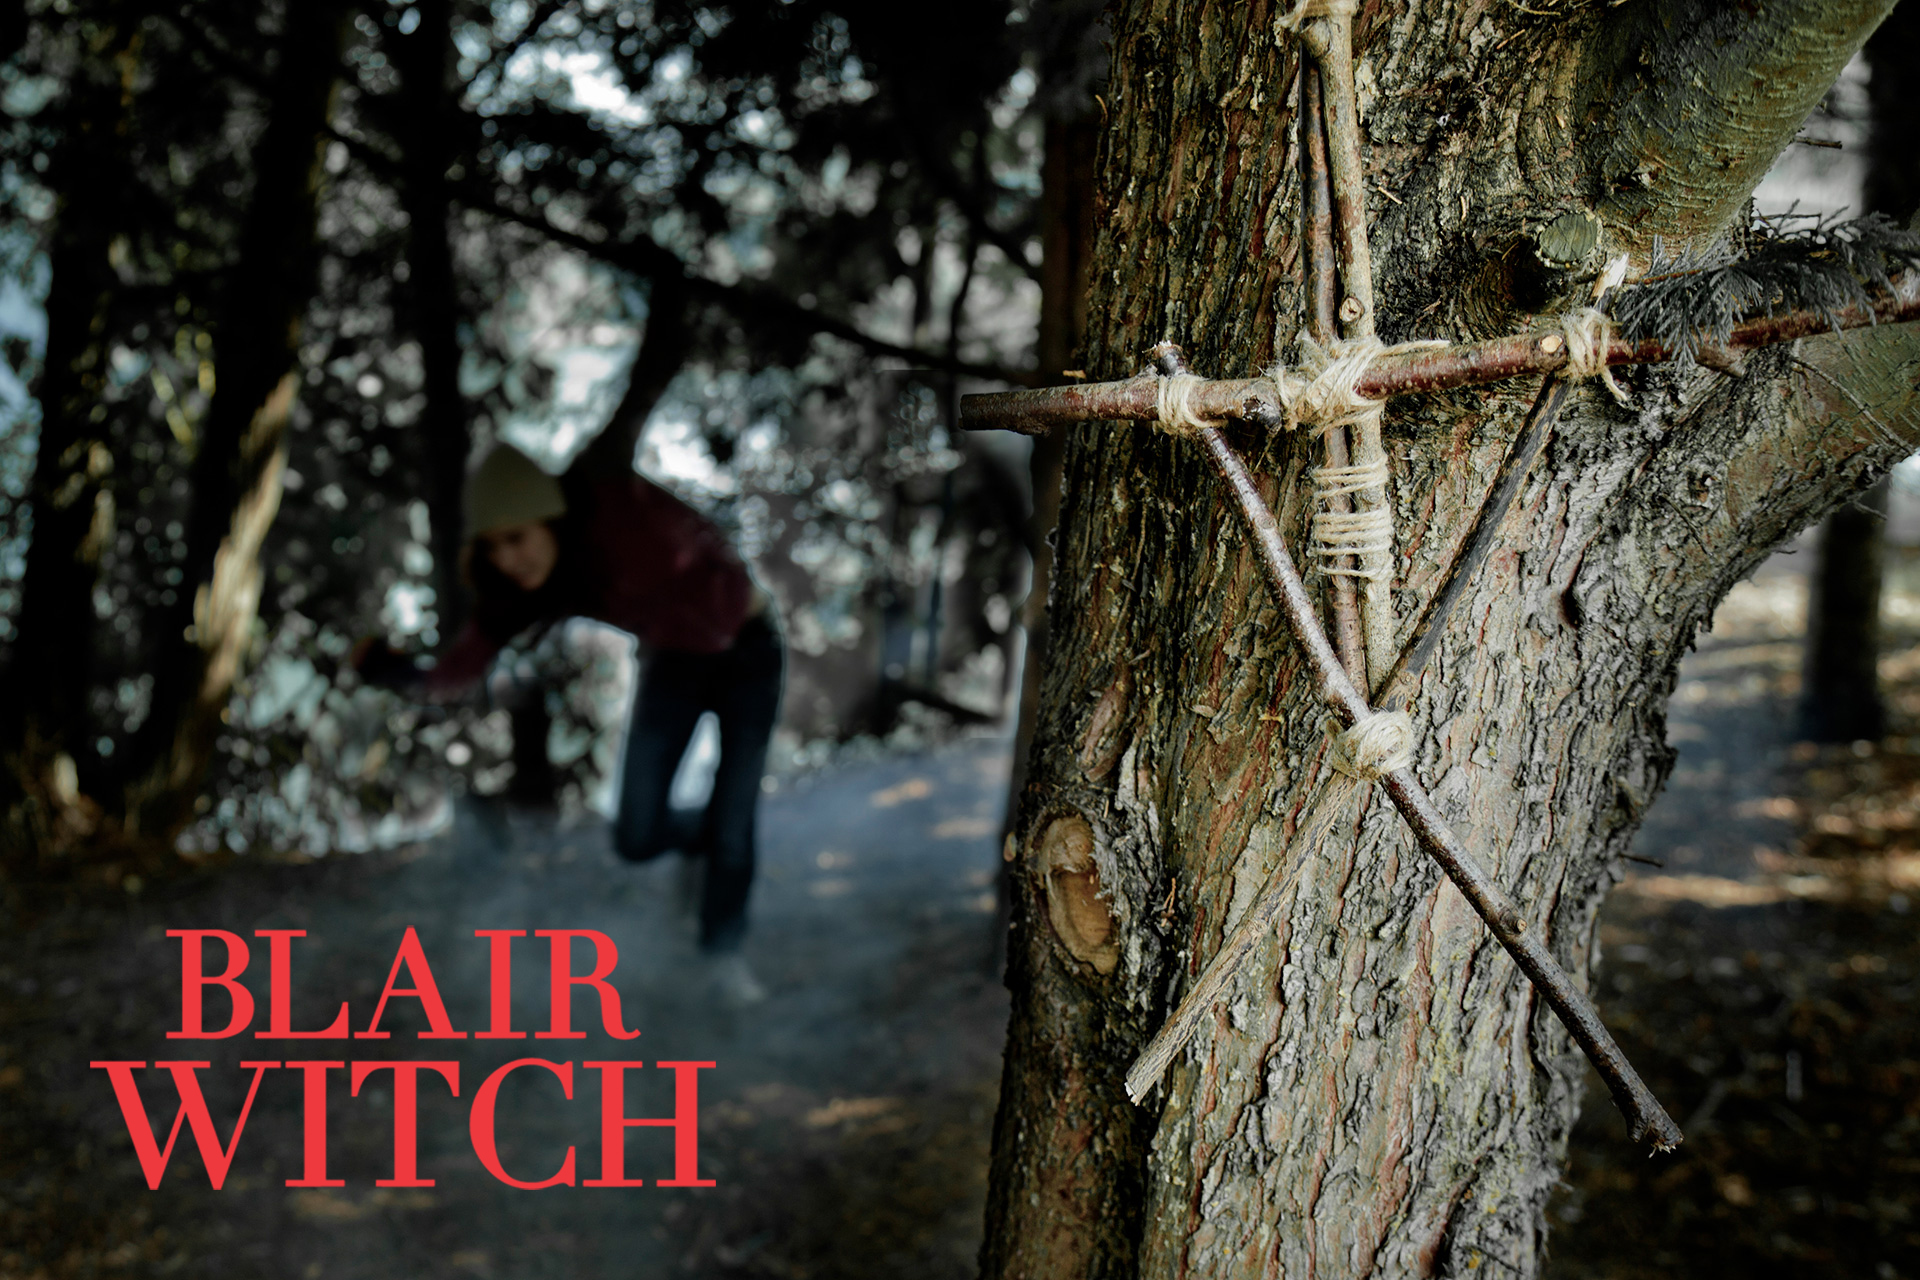 Beware the Blair Witch returns to the Thorpe Park Fright Nights 2018 Line-Up